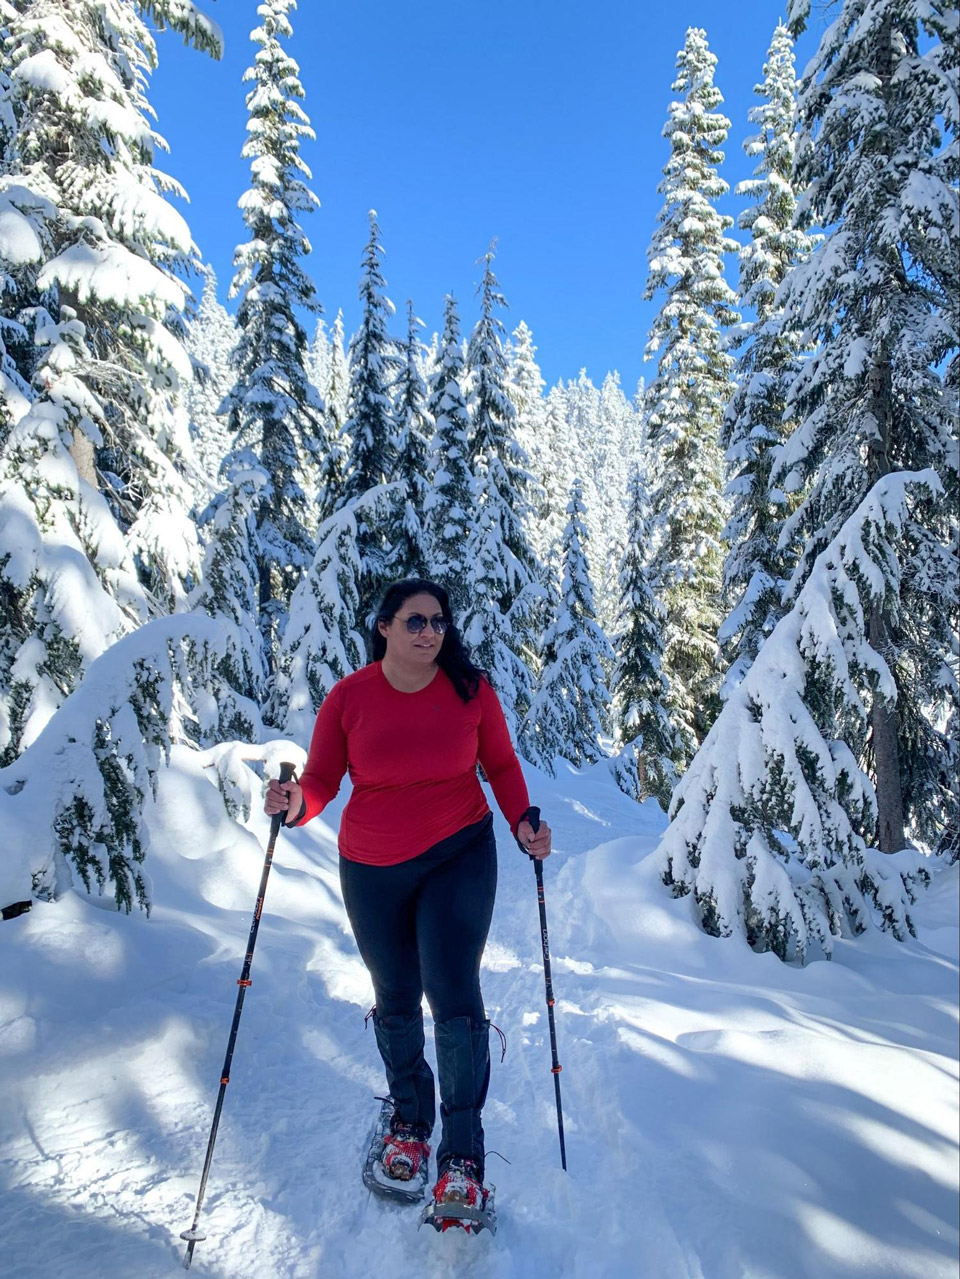 Joanna Genovese hiking a snow covered trail with ski poles and snowshoes. In the background is a blue sky and a snow covered forest.